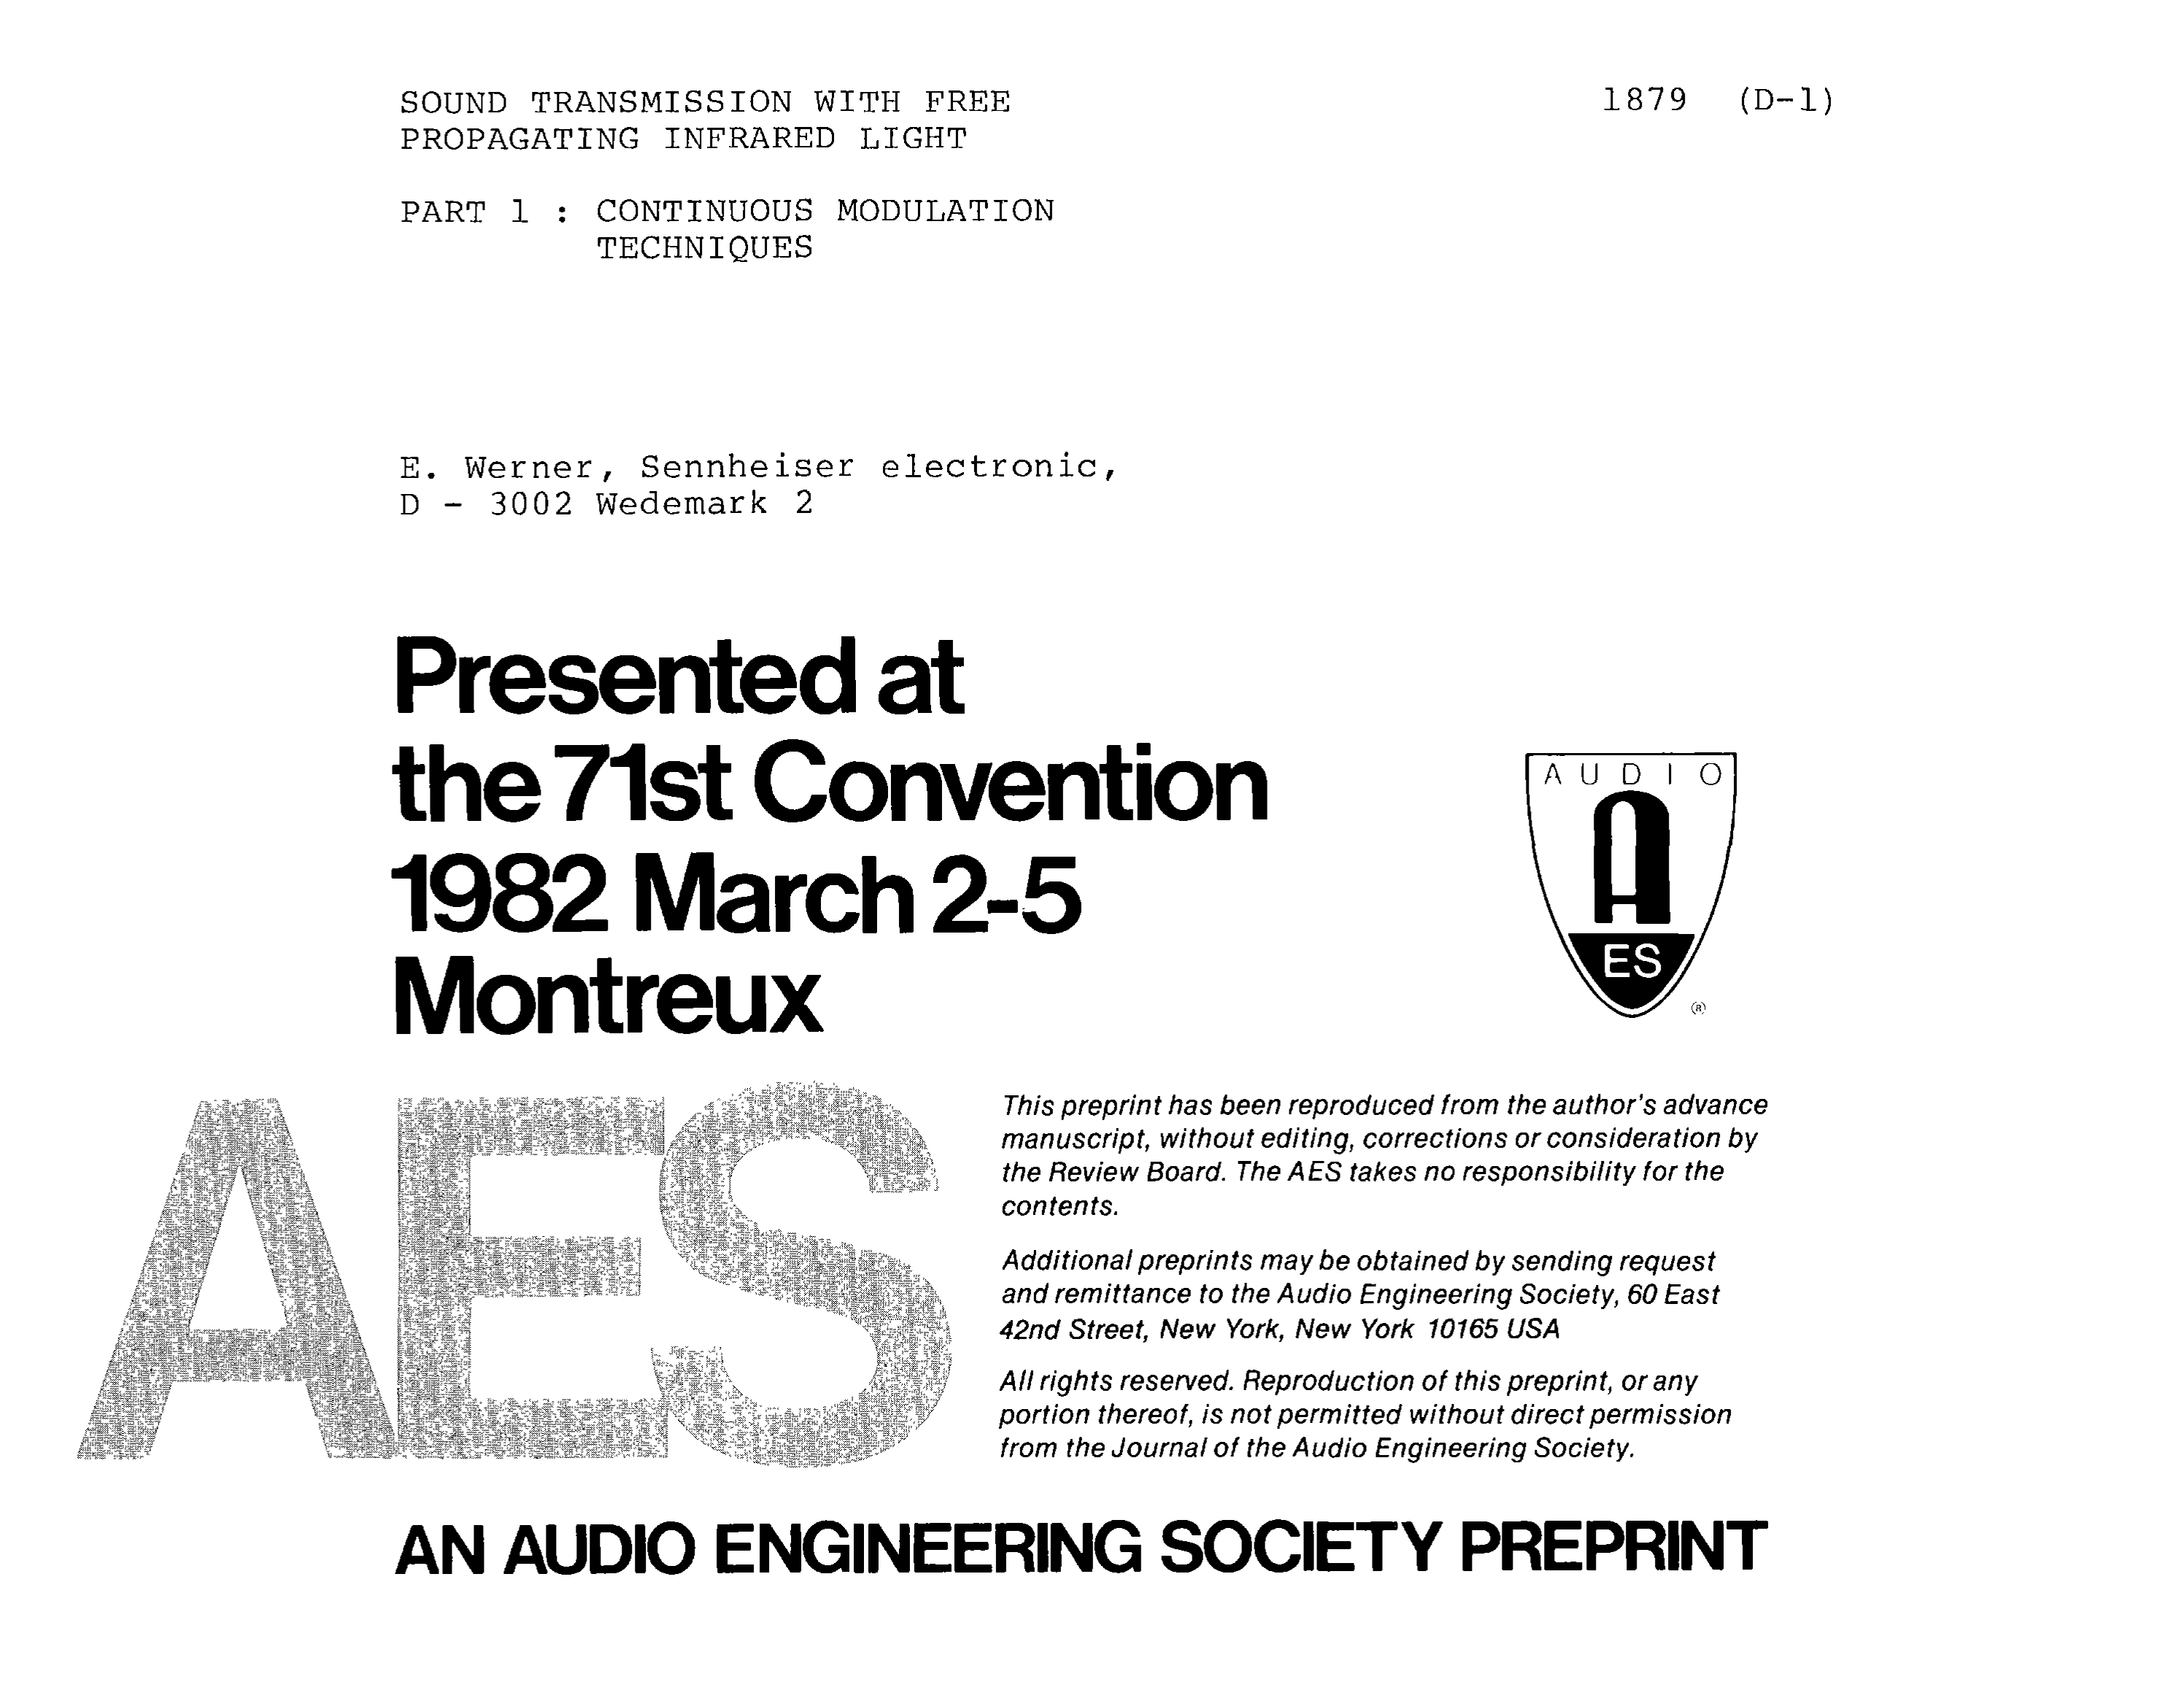 Aes E Library Sound Transmission With Free Propagating Infrared Headphones Transmitter Circuit Light Part 1 Continuous Modulation Techniques